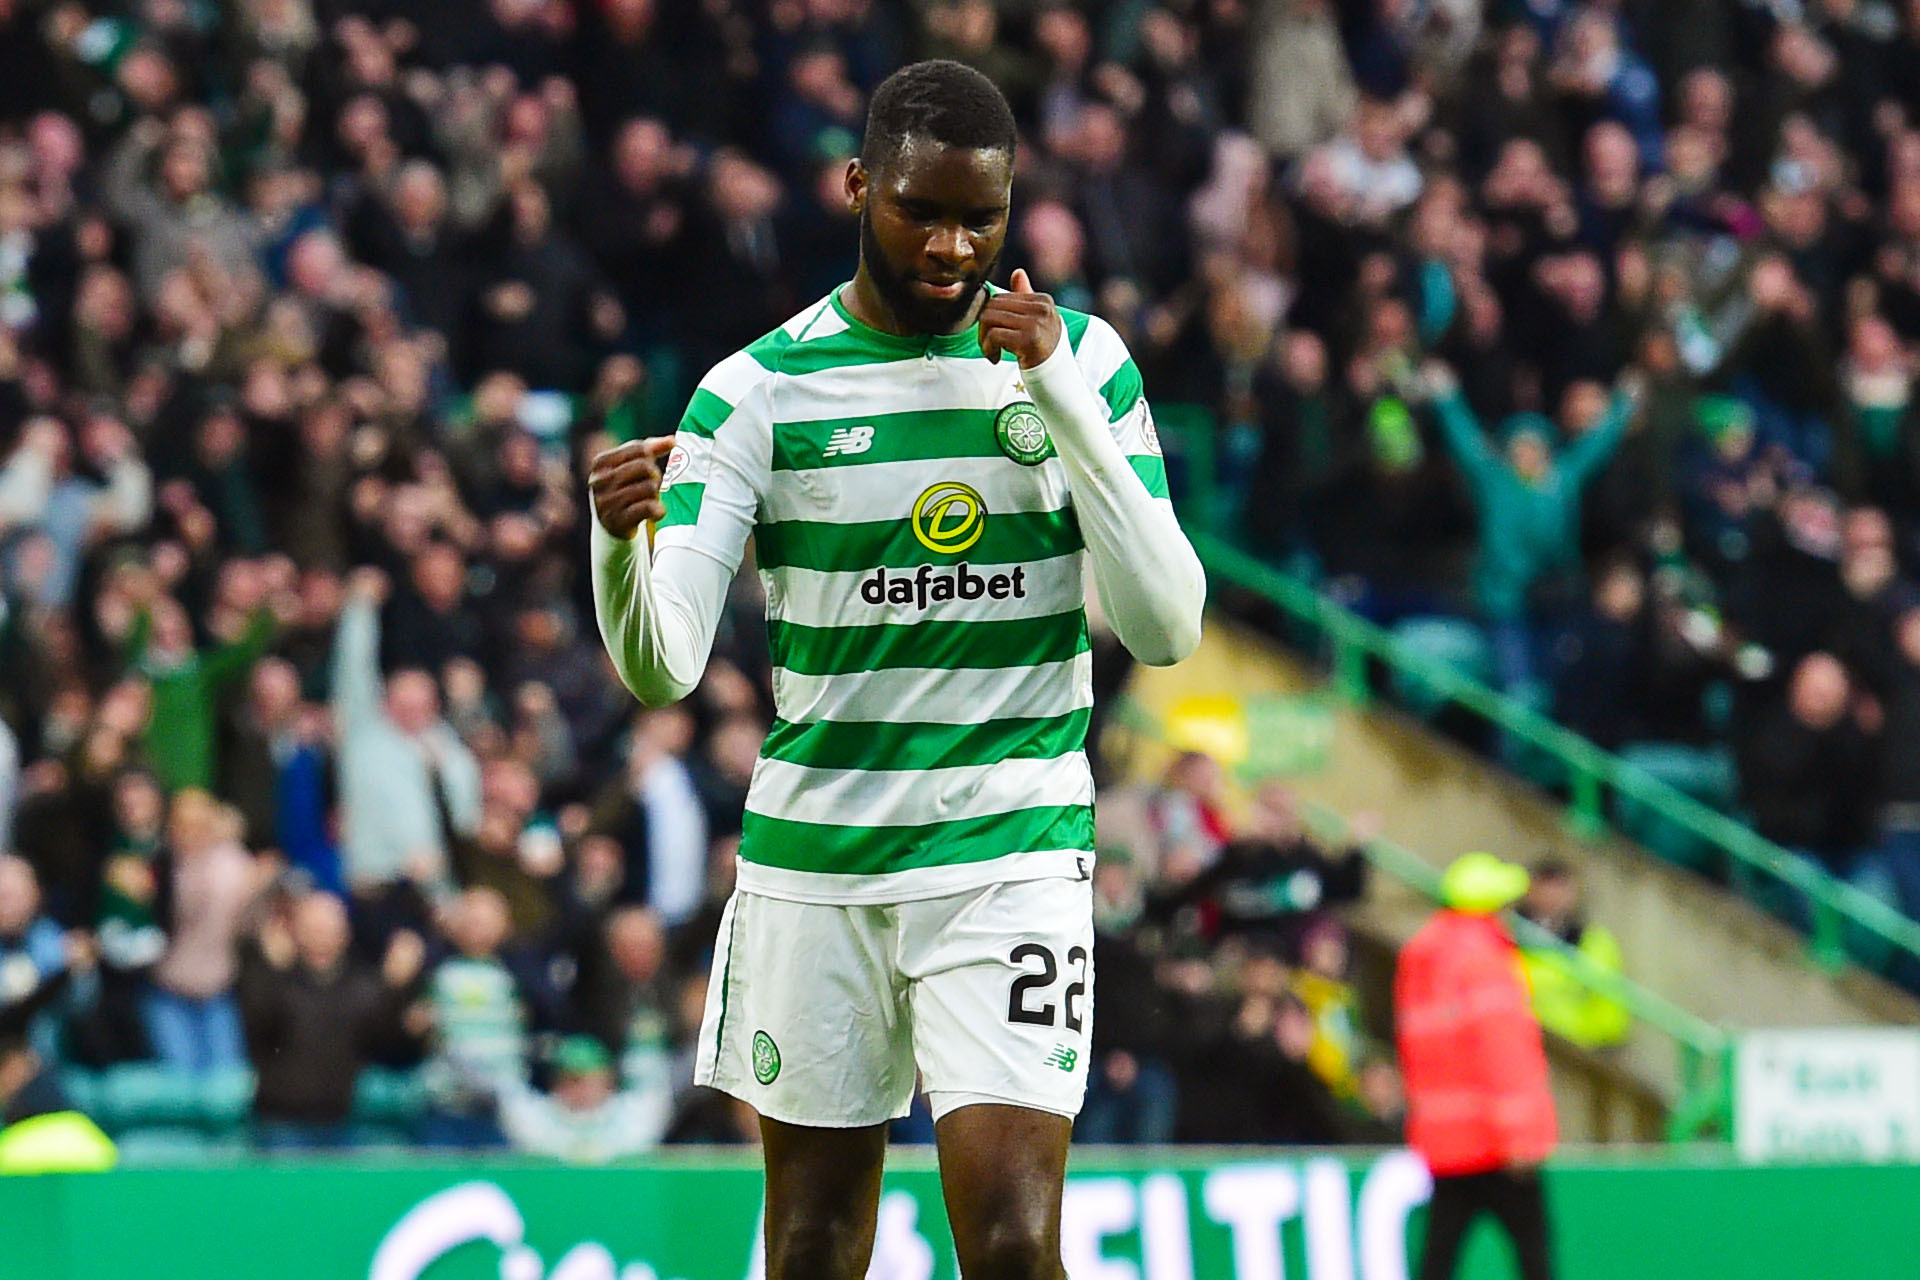 20/10/18 LADBROKES PREMIERSHIP.CELTIC v HIBERNIAN (4-2).CELTIC PARK - GLASGOW.Celtic's Odsonne Edouard celebrates his first goal.